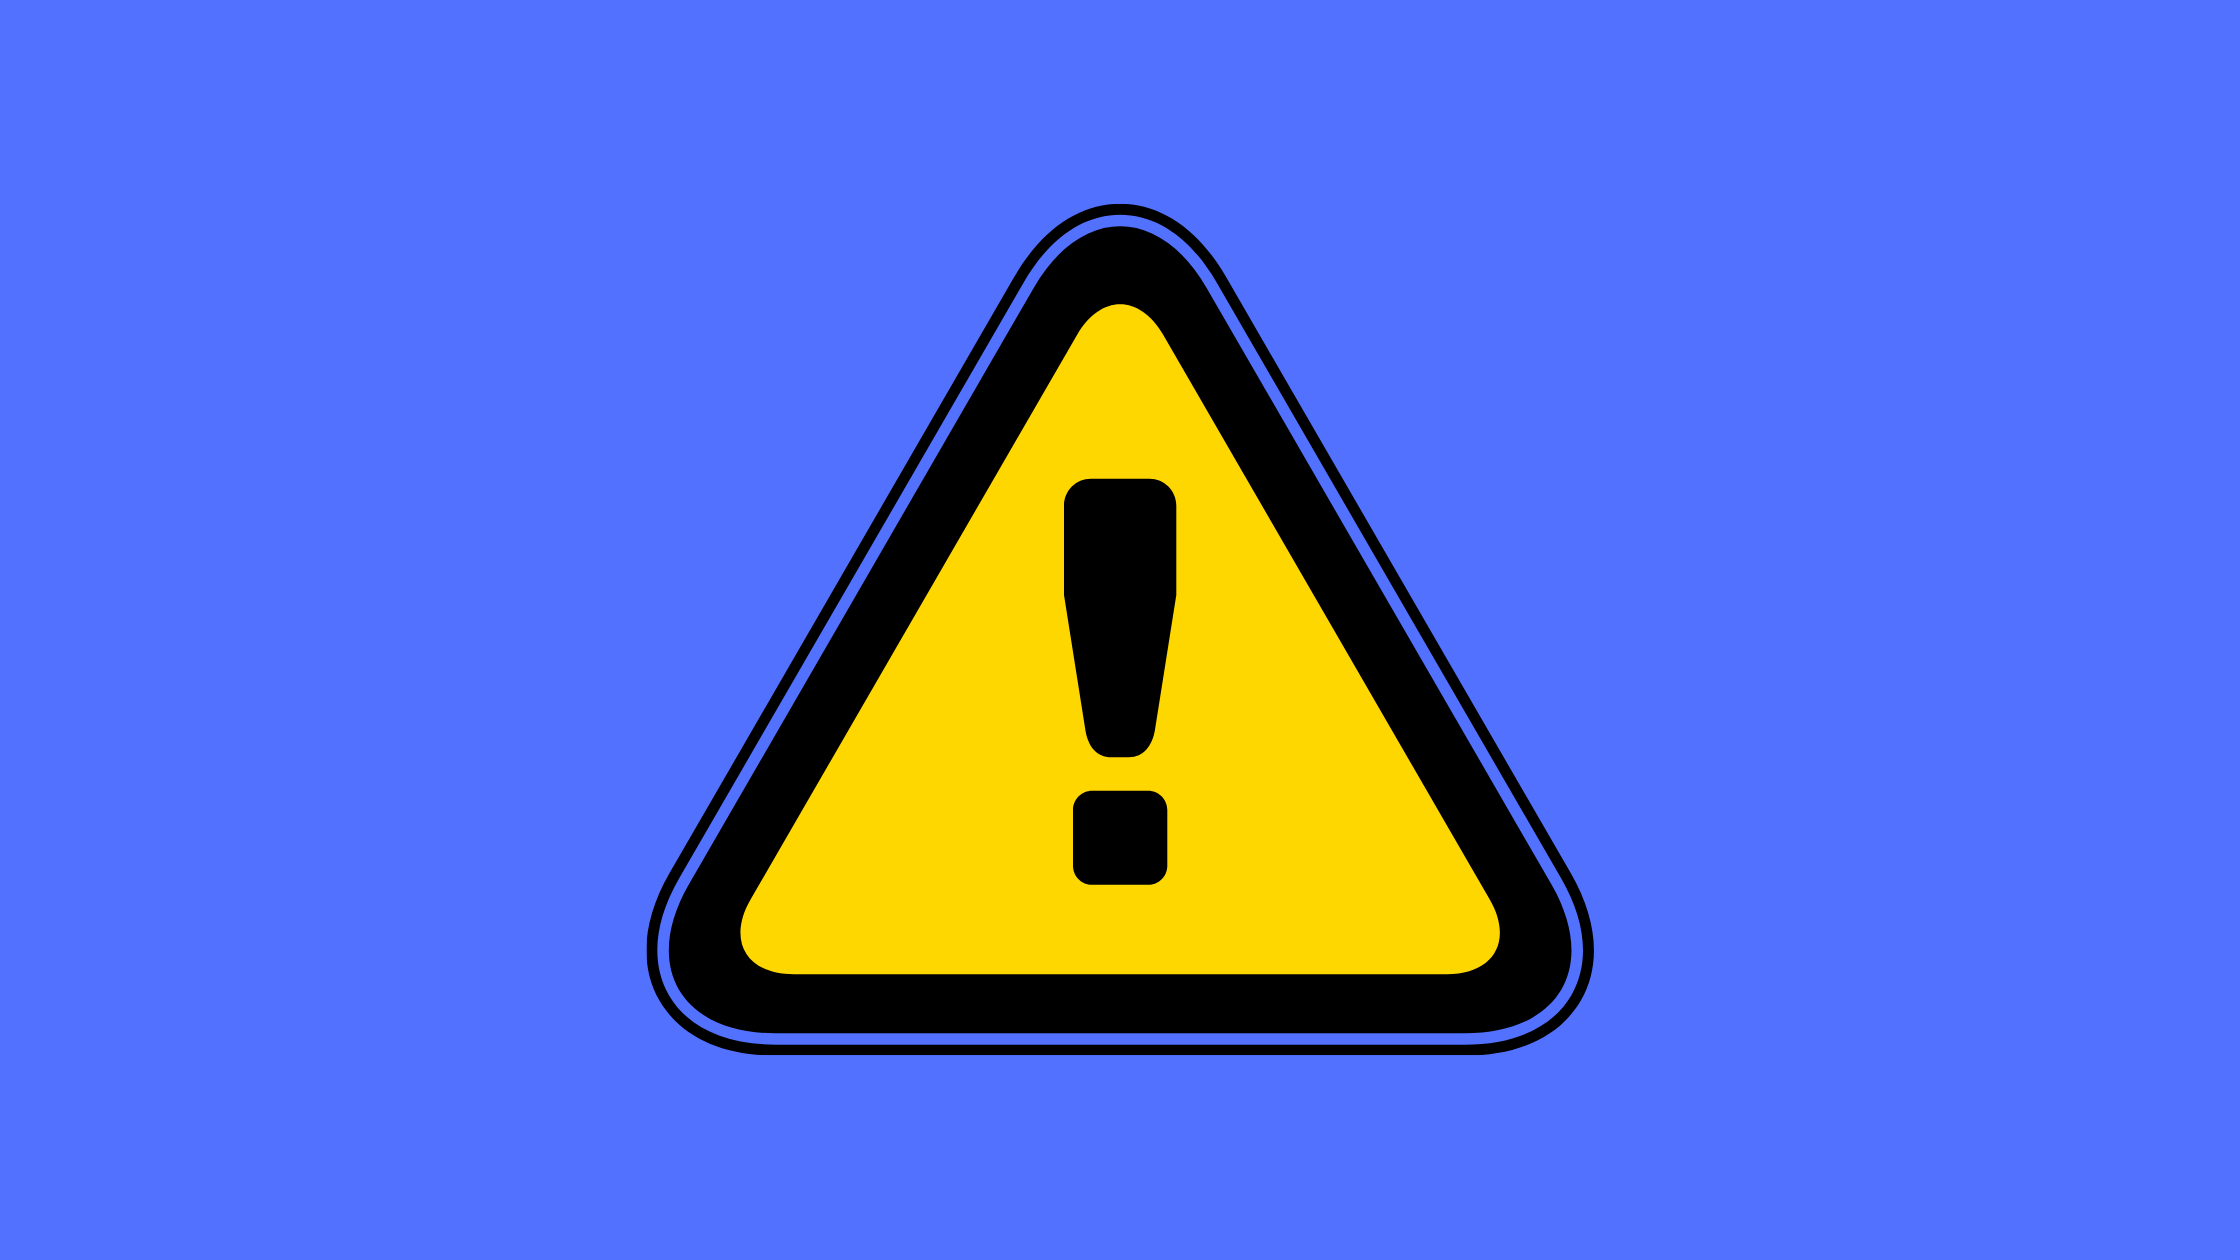 Hazard Sign Yellow Triangle with Black Exclamation Mark